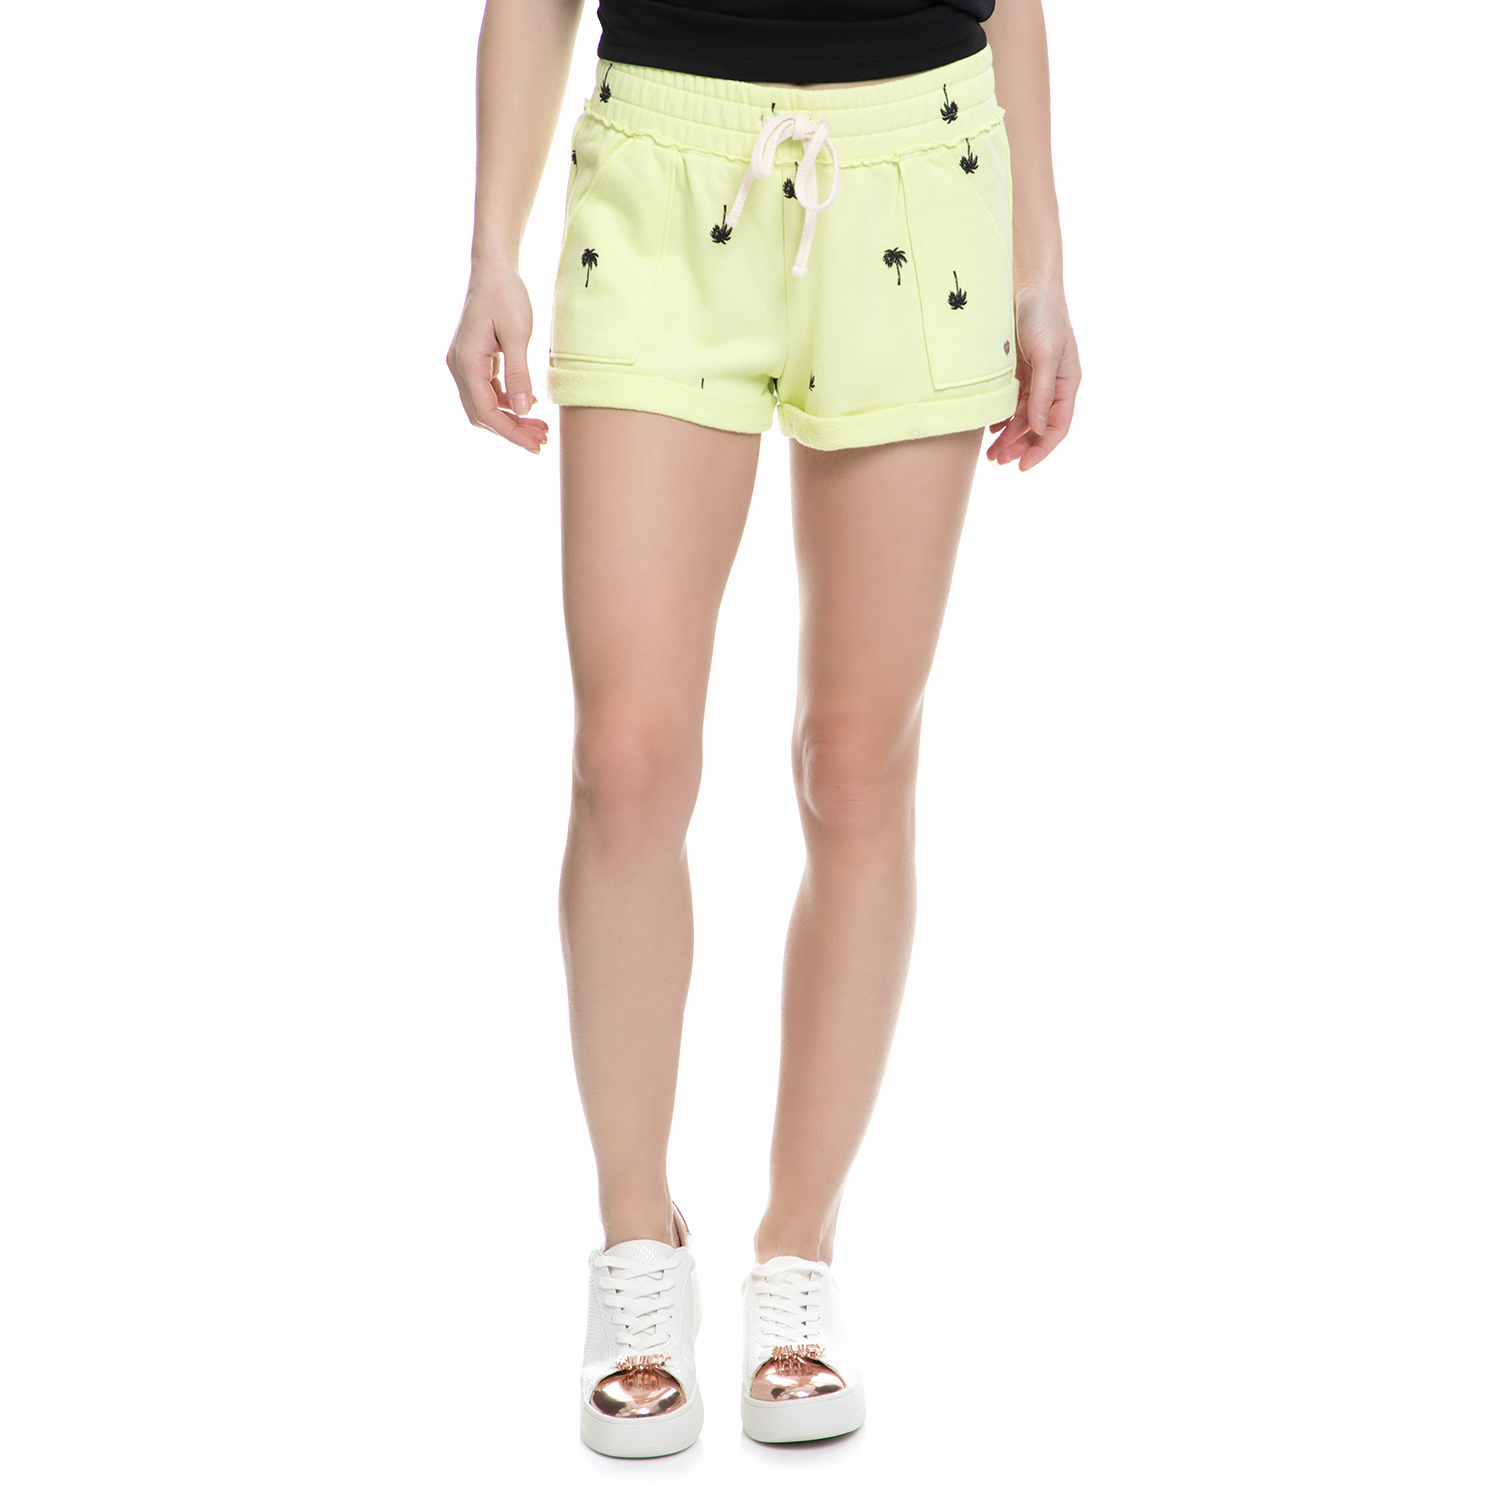 JUICY COUTURE - Γυναικείο σορτς Juicy Couture PALM TREE TERRY ROLL κίτρινο γυναικεία ρούχα σορτς βερμούδες casual jean